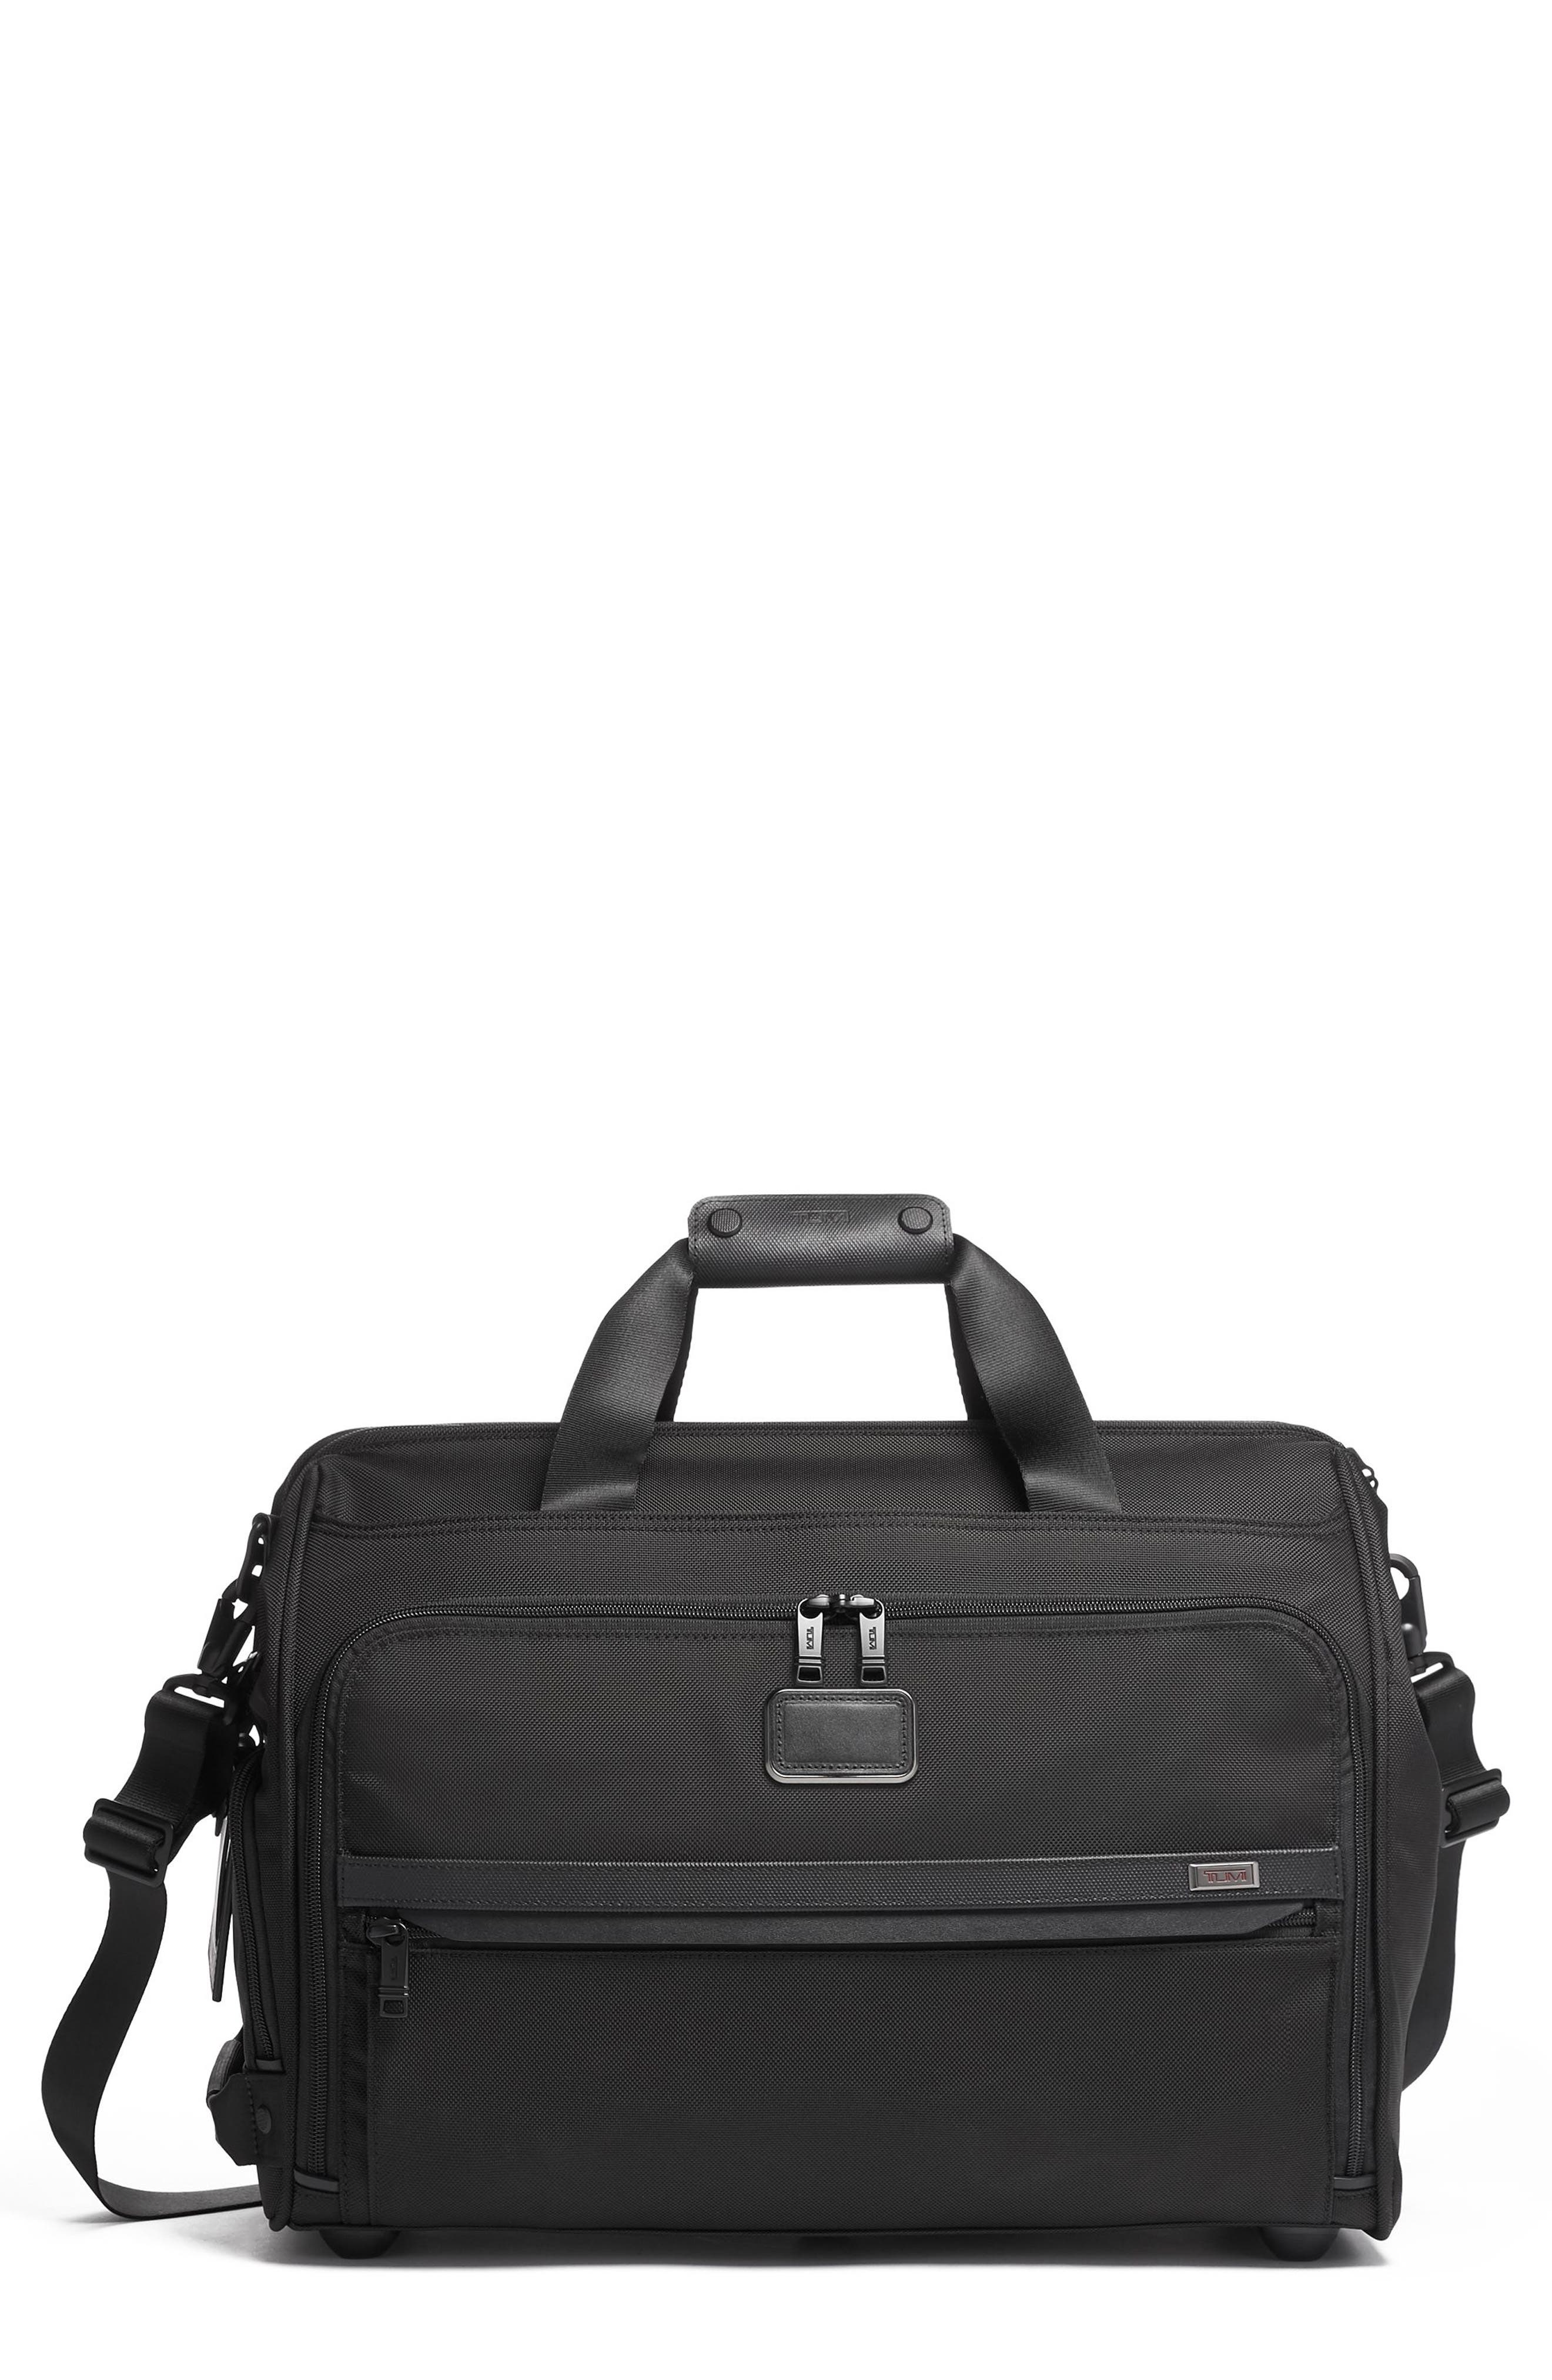 Alpha 3 Collection Framed Soft Duffle